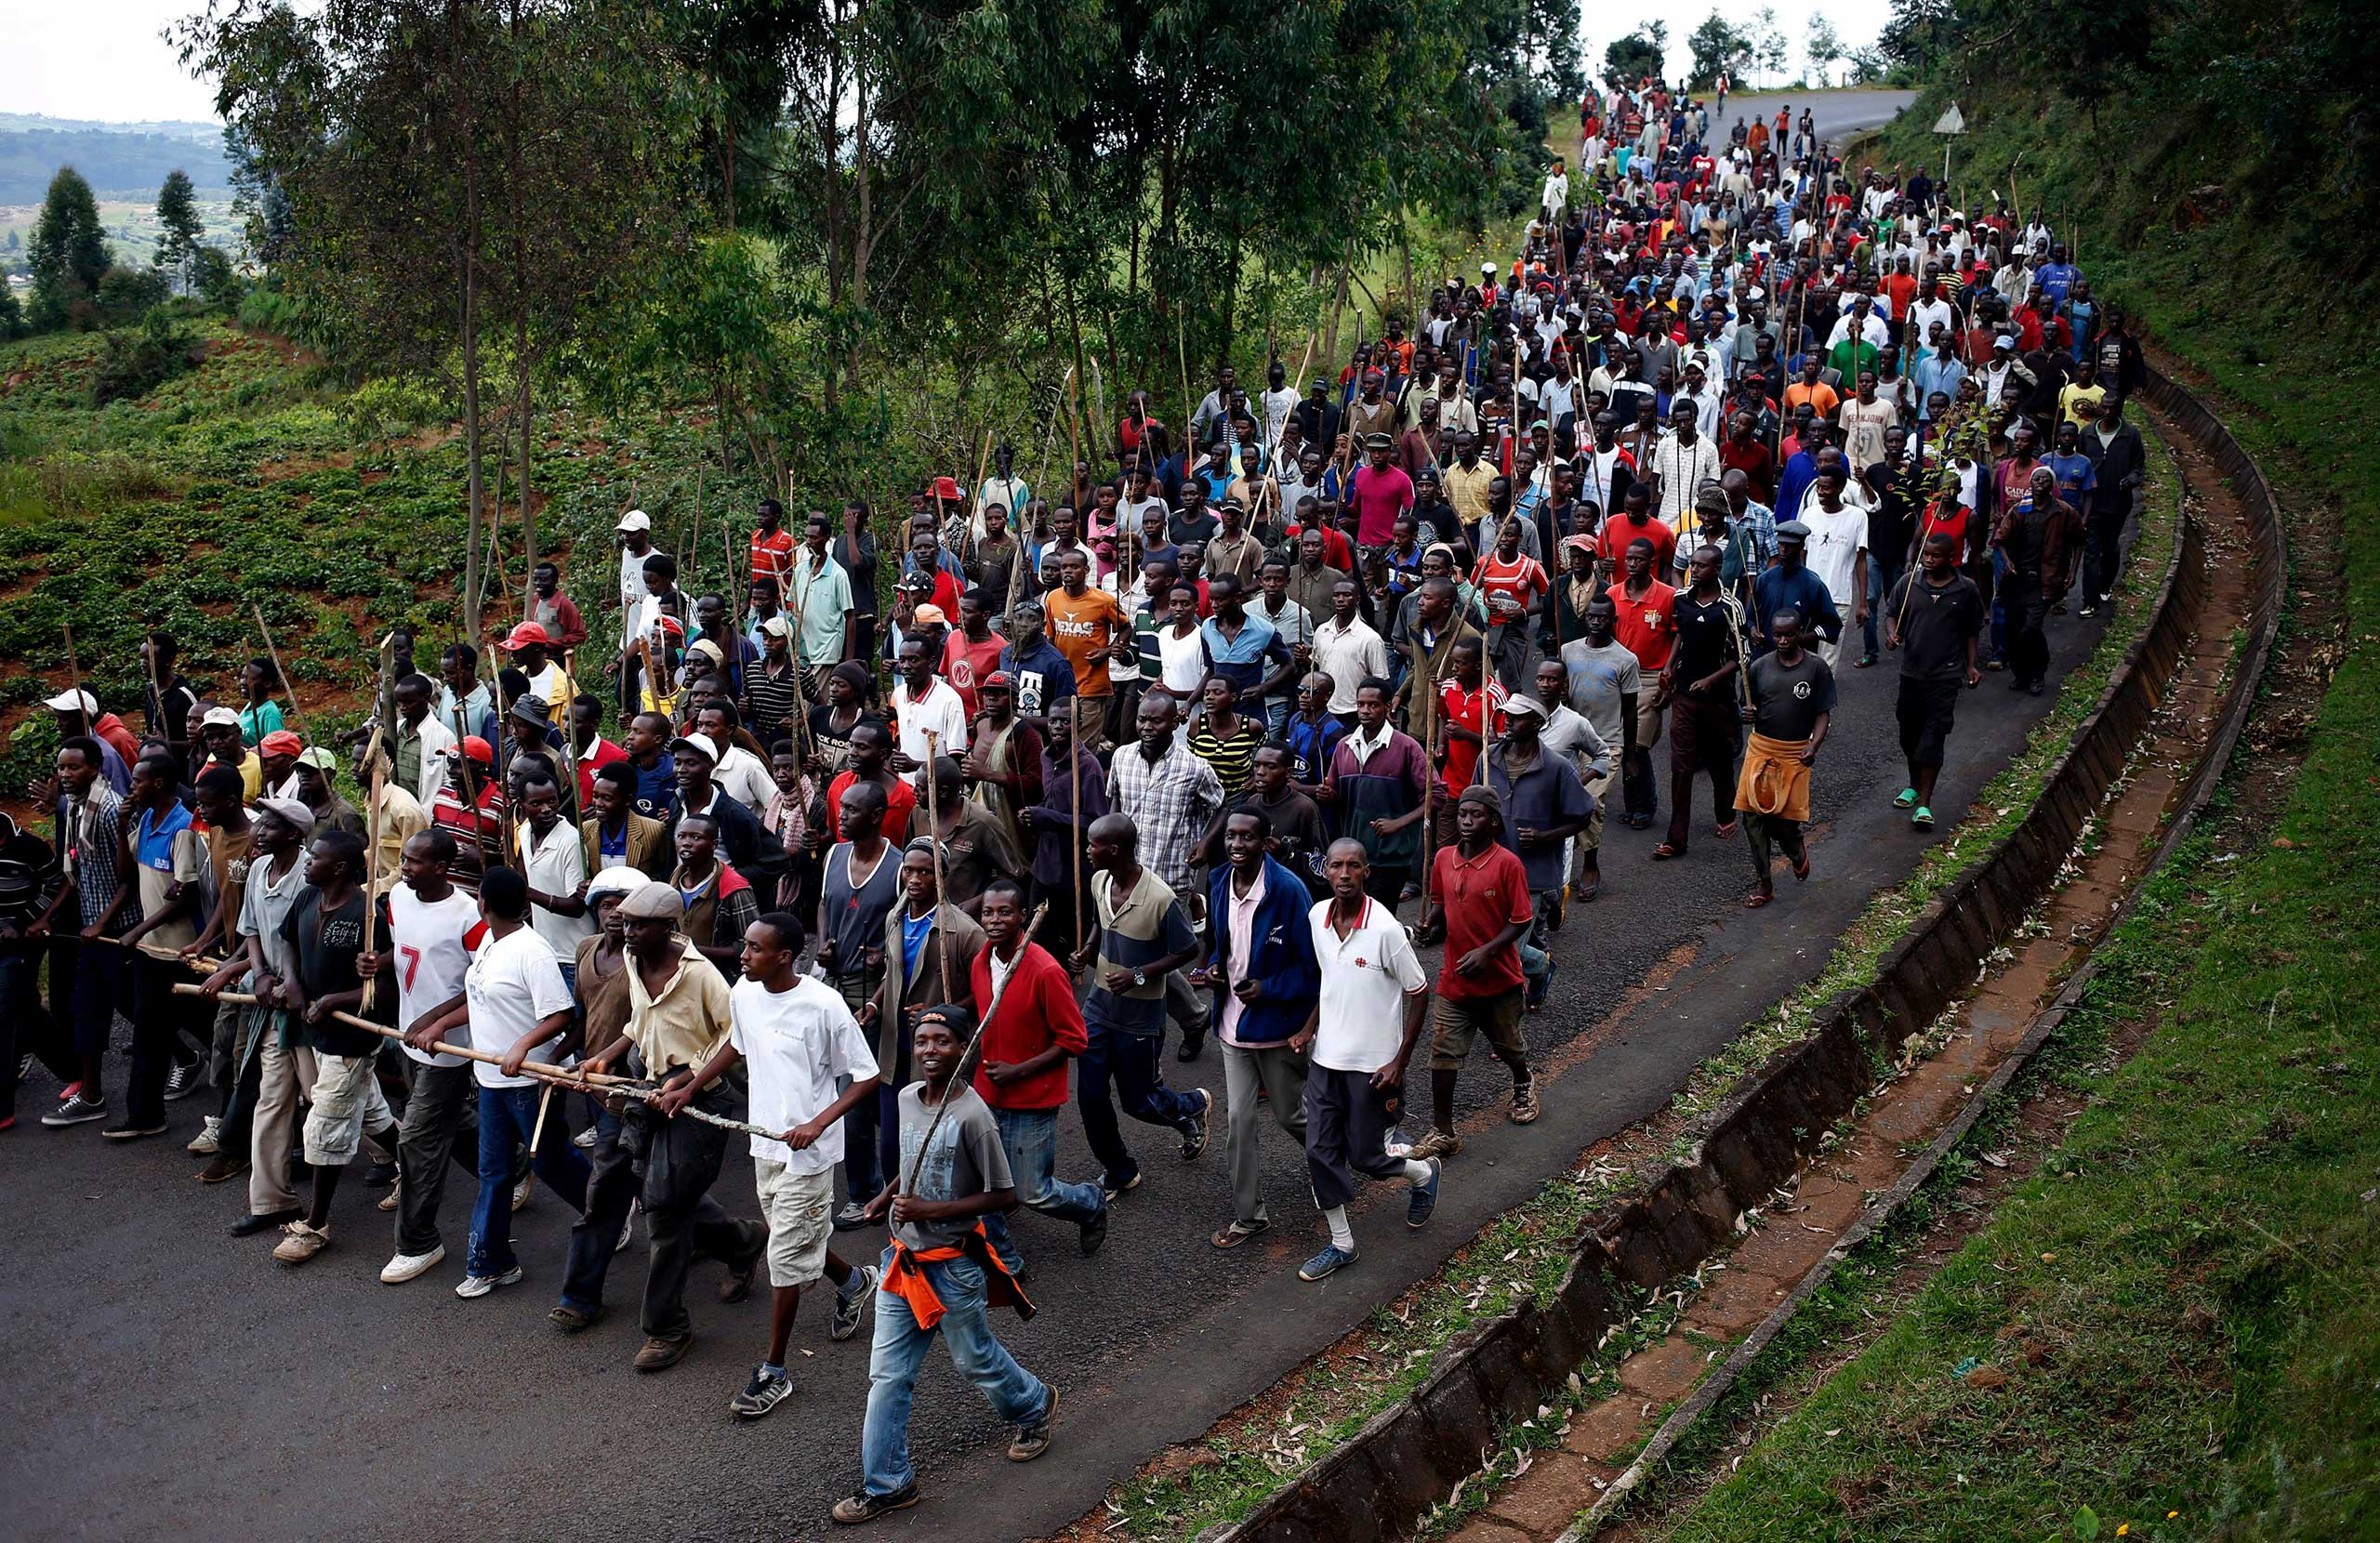 Protesters against President Pierre Nkurunziza and his bid for a third term march towards the town of Ijenda, Burundi, June 3, 2015. The election, resulting in a disputed win for Nkurunziza, was rocked by violence between his supporters and opponents.